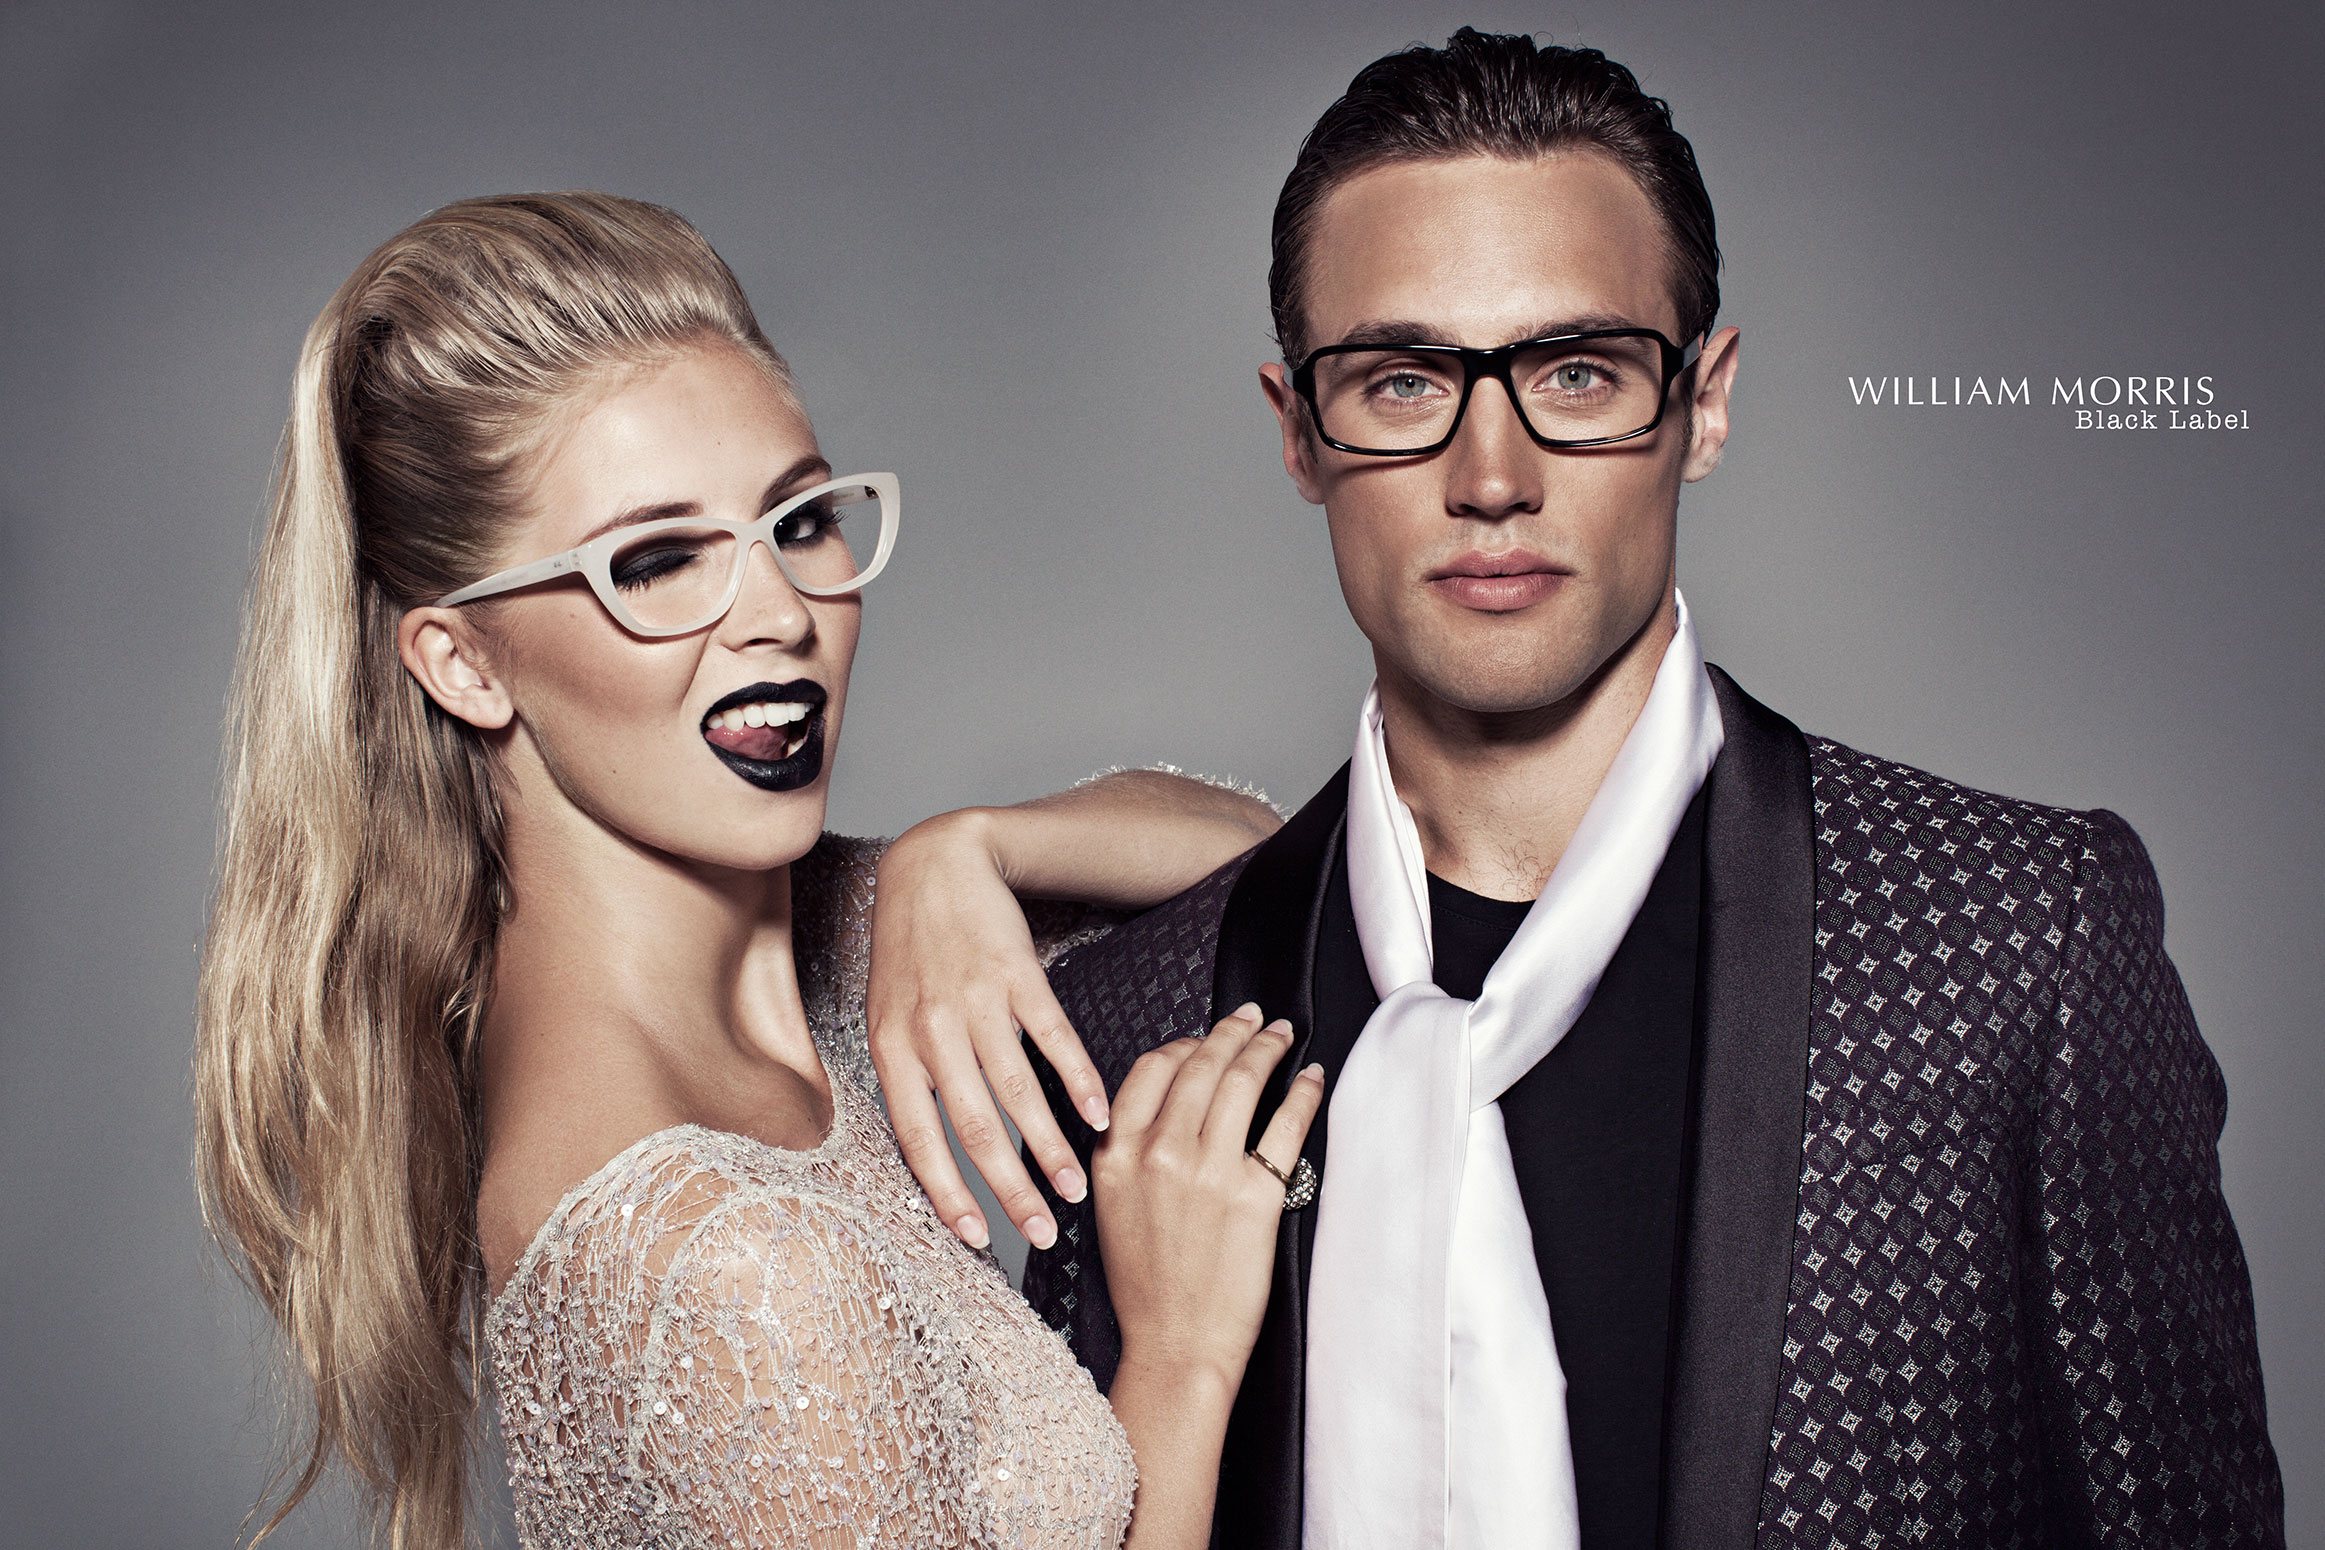 william-morris-london-black-label-2013-campaign-glasses-eyewear-1